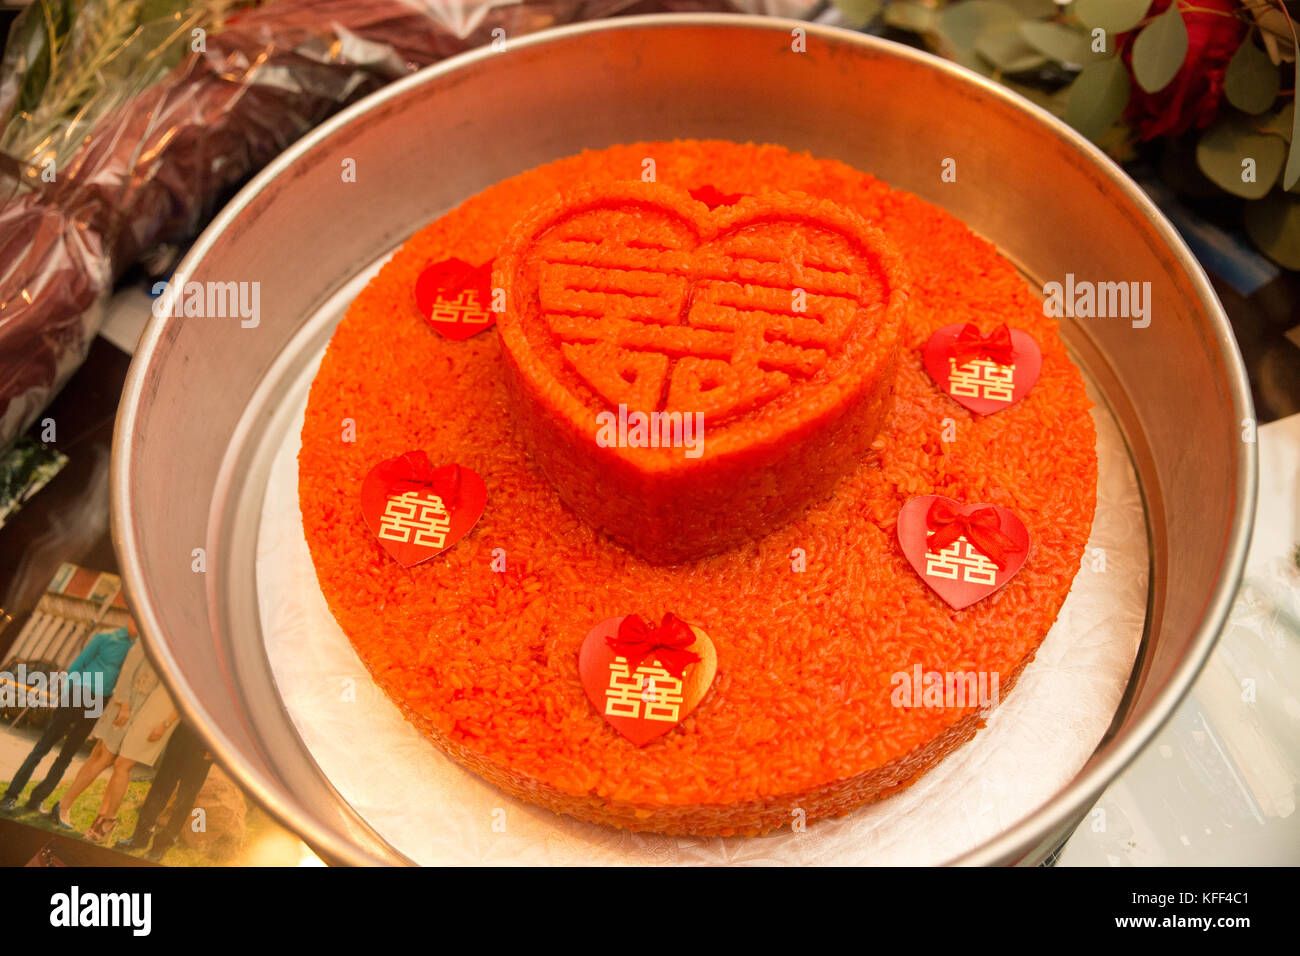 traditional red rice cake in a tin box gift from grooms family to brides family in Vietnamese culture - Stock Image